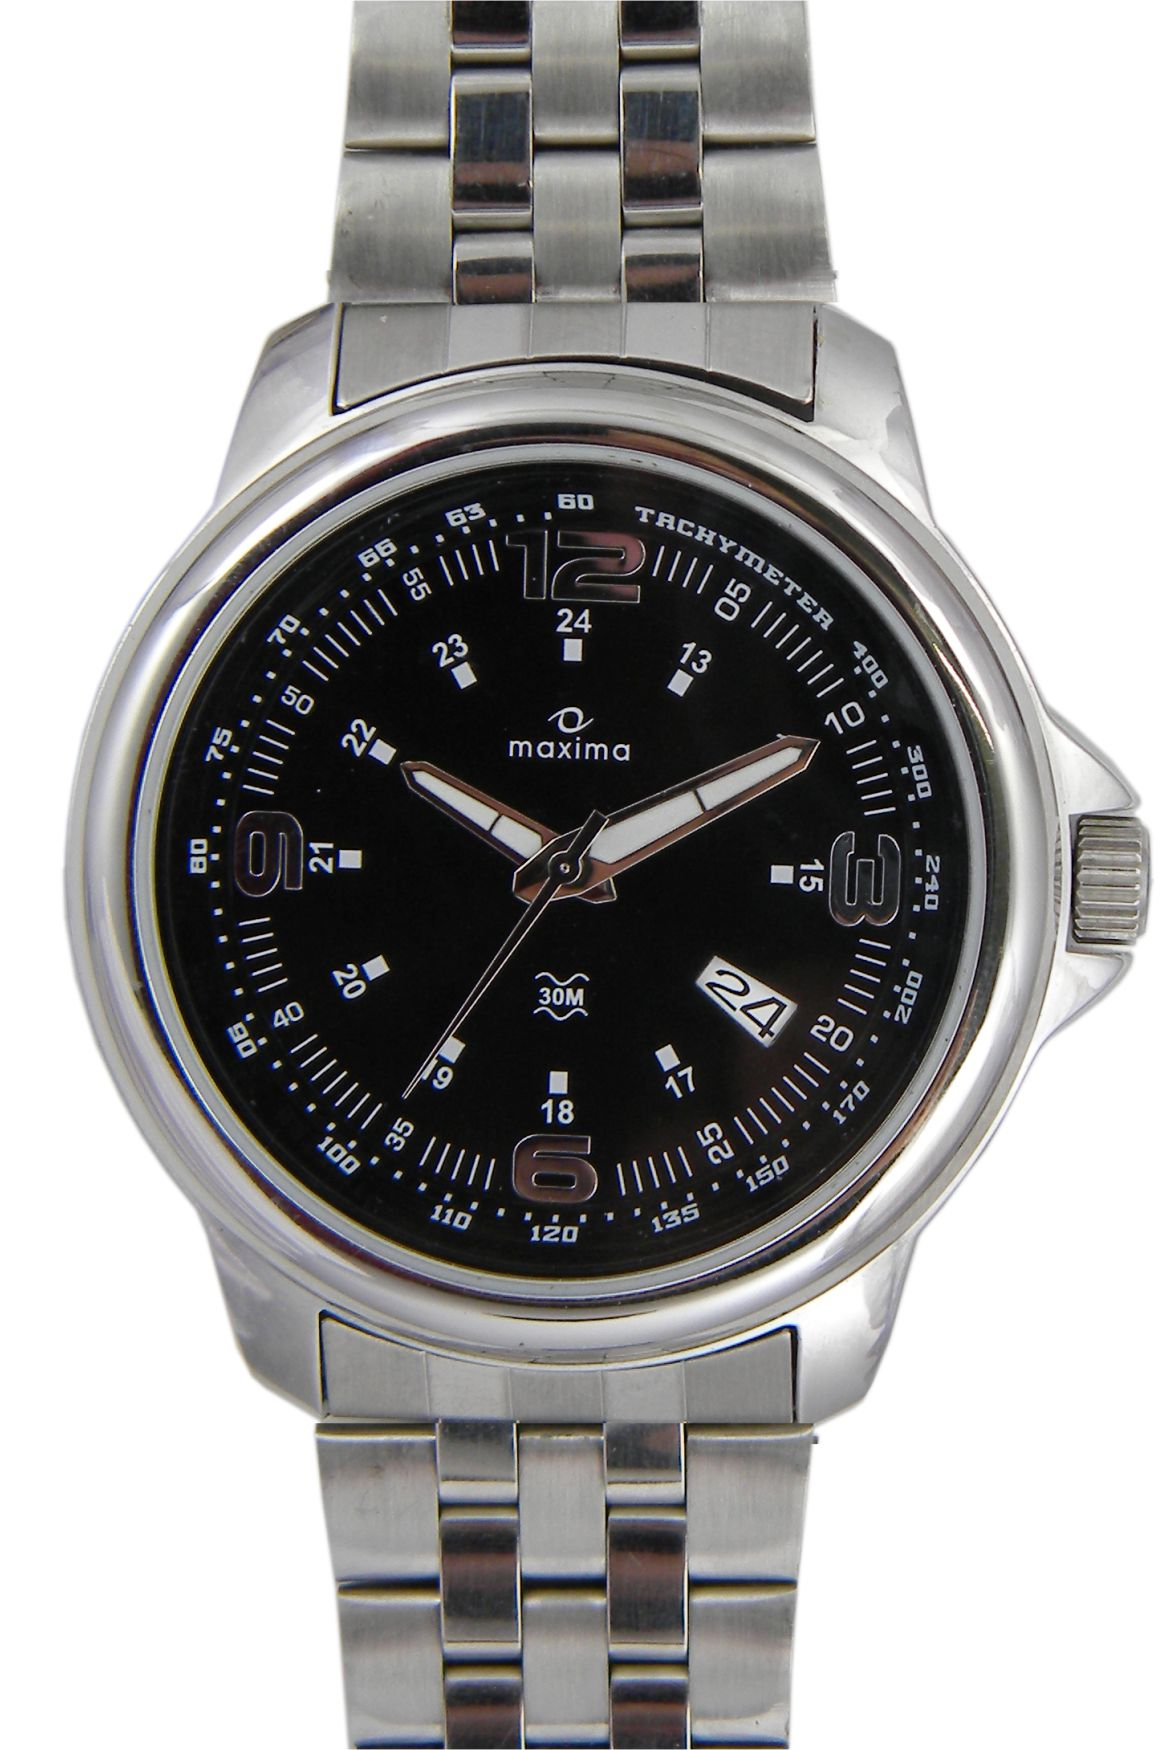 owler and competitors maximawatches employees original profile company revenue maxima watches